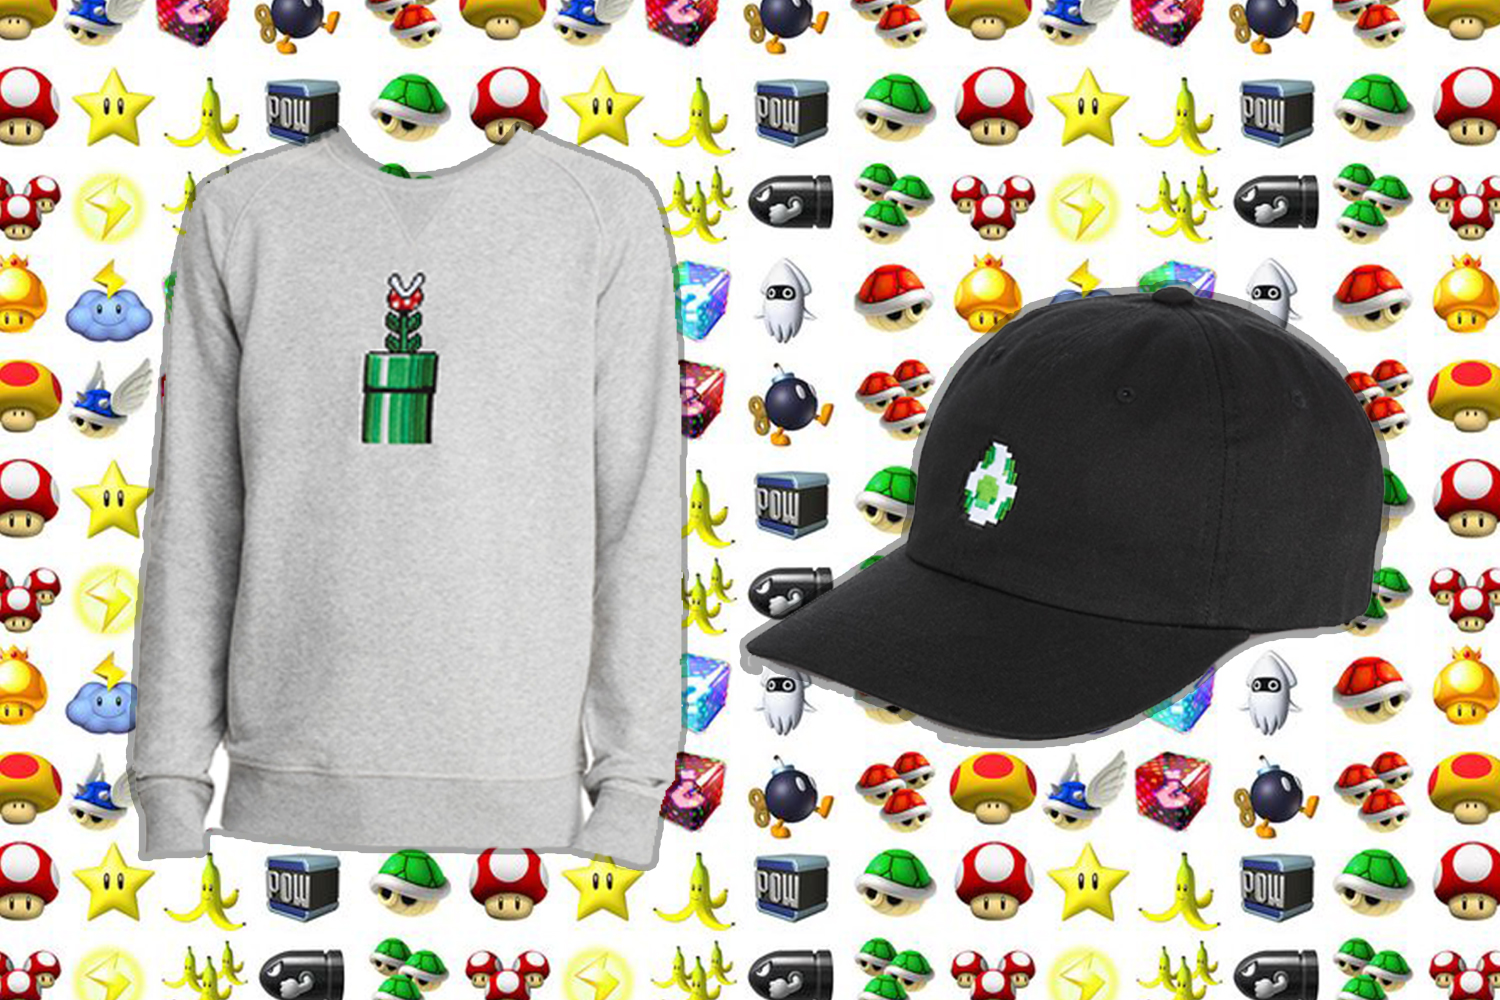 The Nintendo collection at Bloomingdale's combines retro gaming with trendy fashion